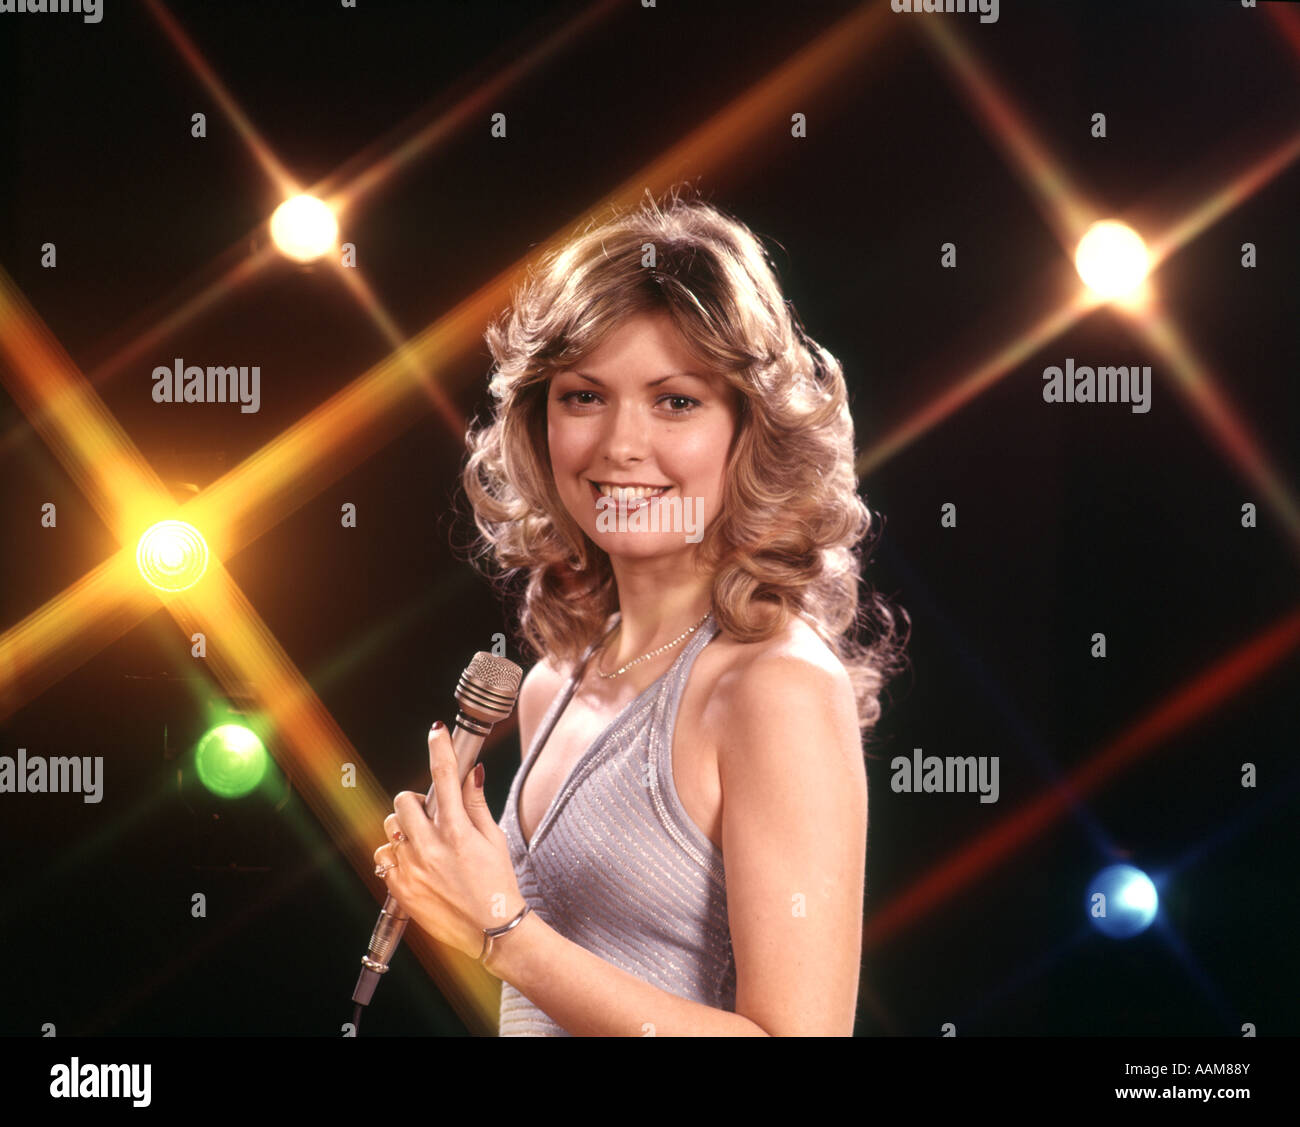 1970 1970s FEMALE VOCALIST SINGER HOLD MICROPHONE STAGE LIGHTS BACKGROUND SING SINGER SINGING PERFORMER WOMAN WOMEN - Stock Image